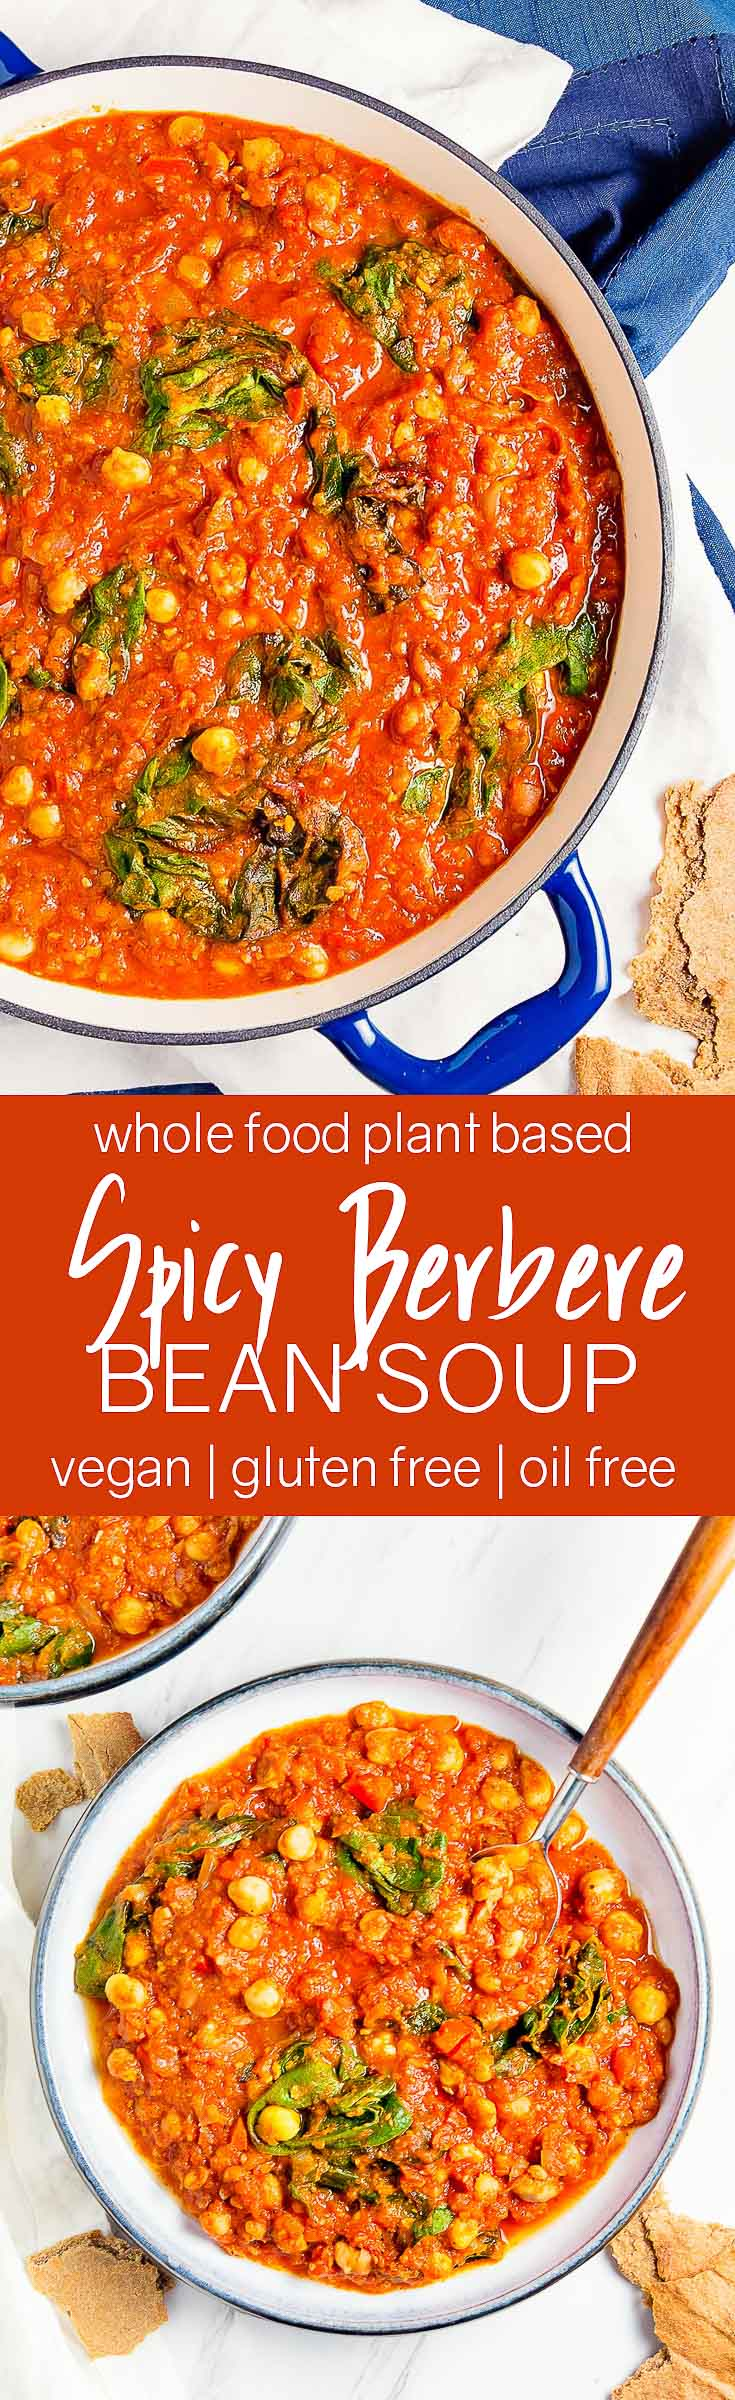 Spicy Berbere Bean Stew, plant based, vegan, vegetarian, whole food plant based, gluten free, recipe, wfpb, healthy, healthy vegan, oil free, no refined sugar, no oil, refined sugar free, dairy free, dinner party, entertaining, stew